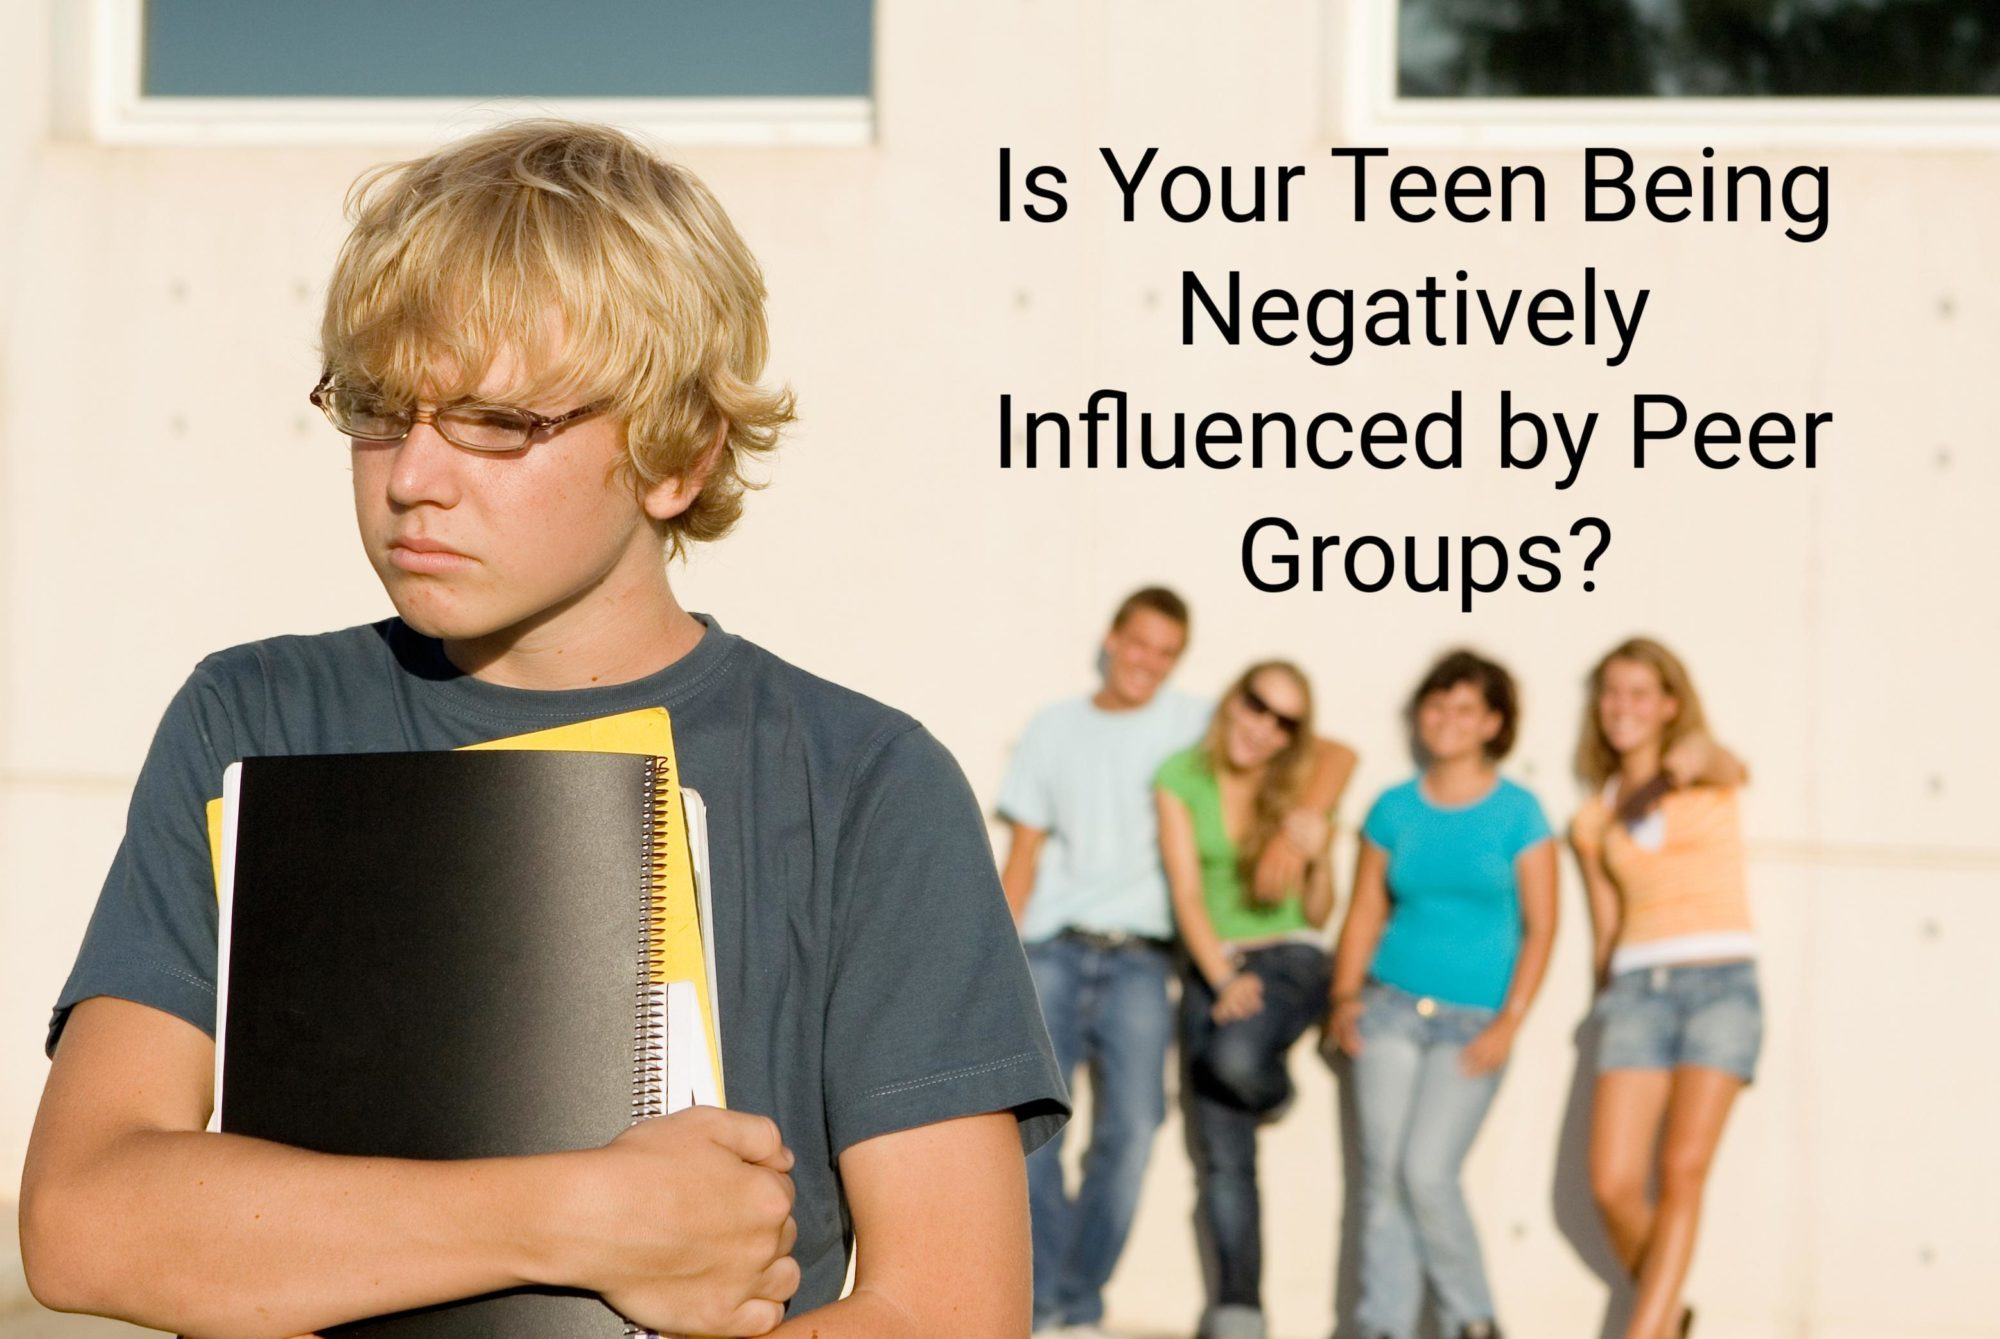 is your teen being negatively influenced by peer groups?